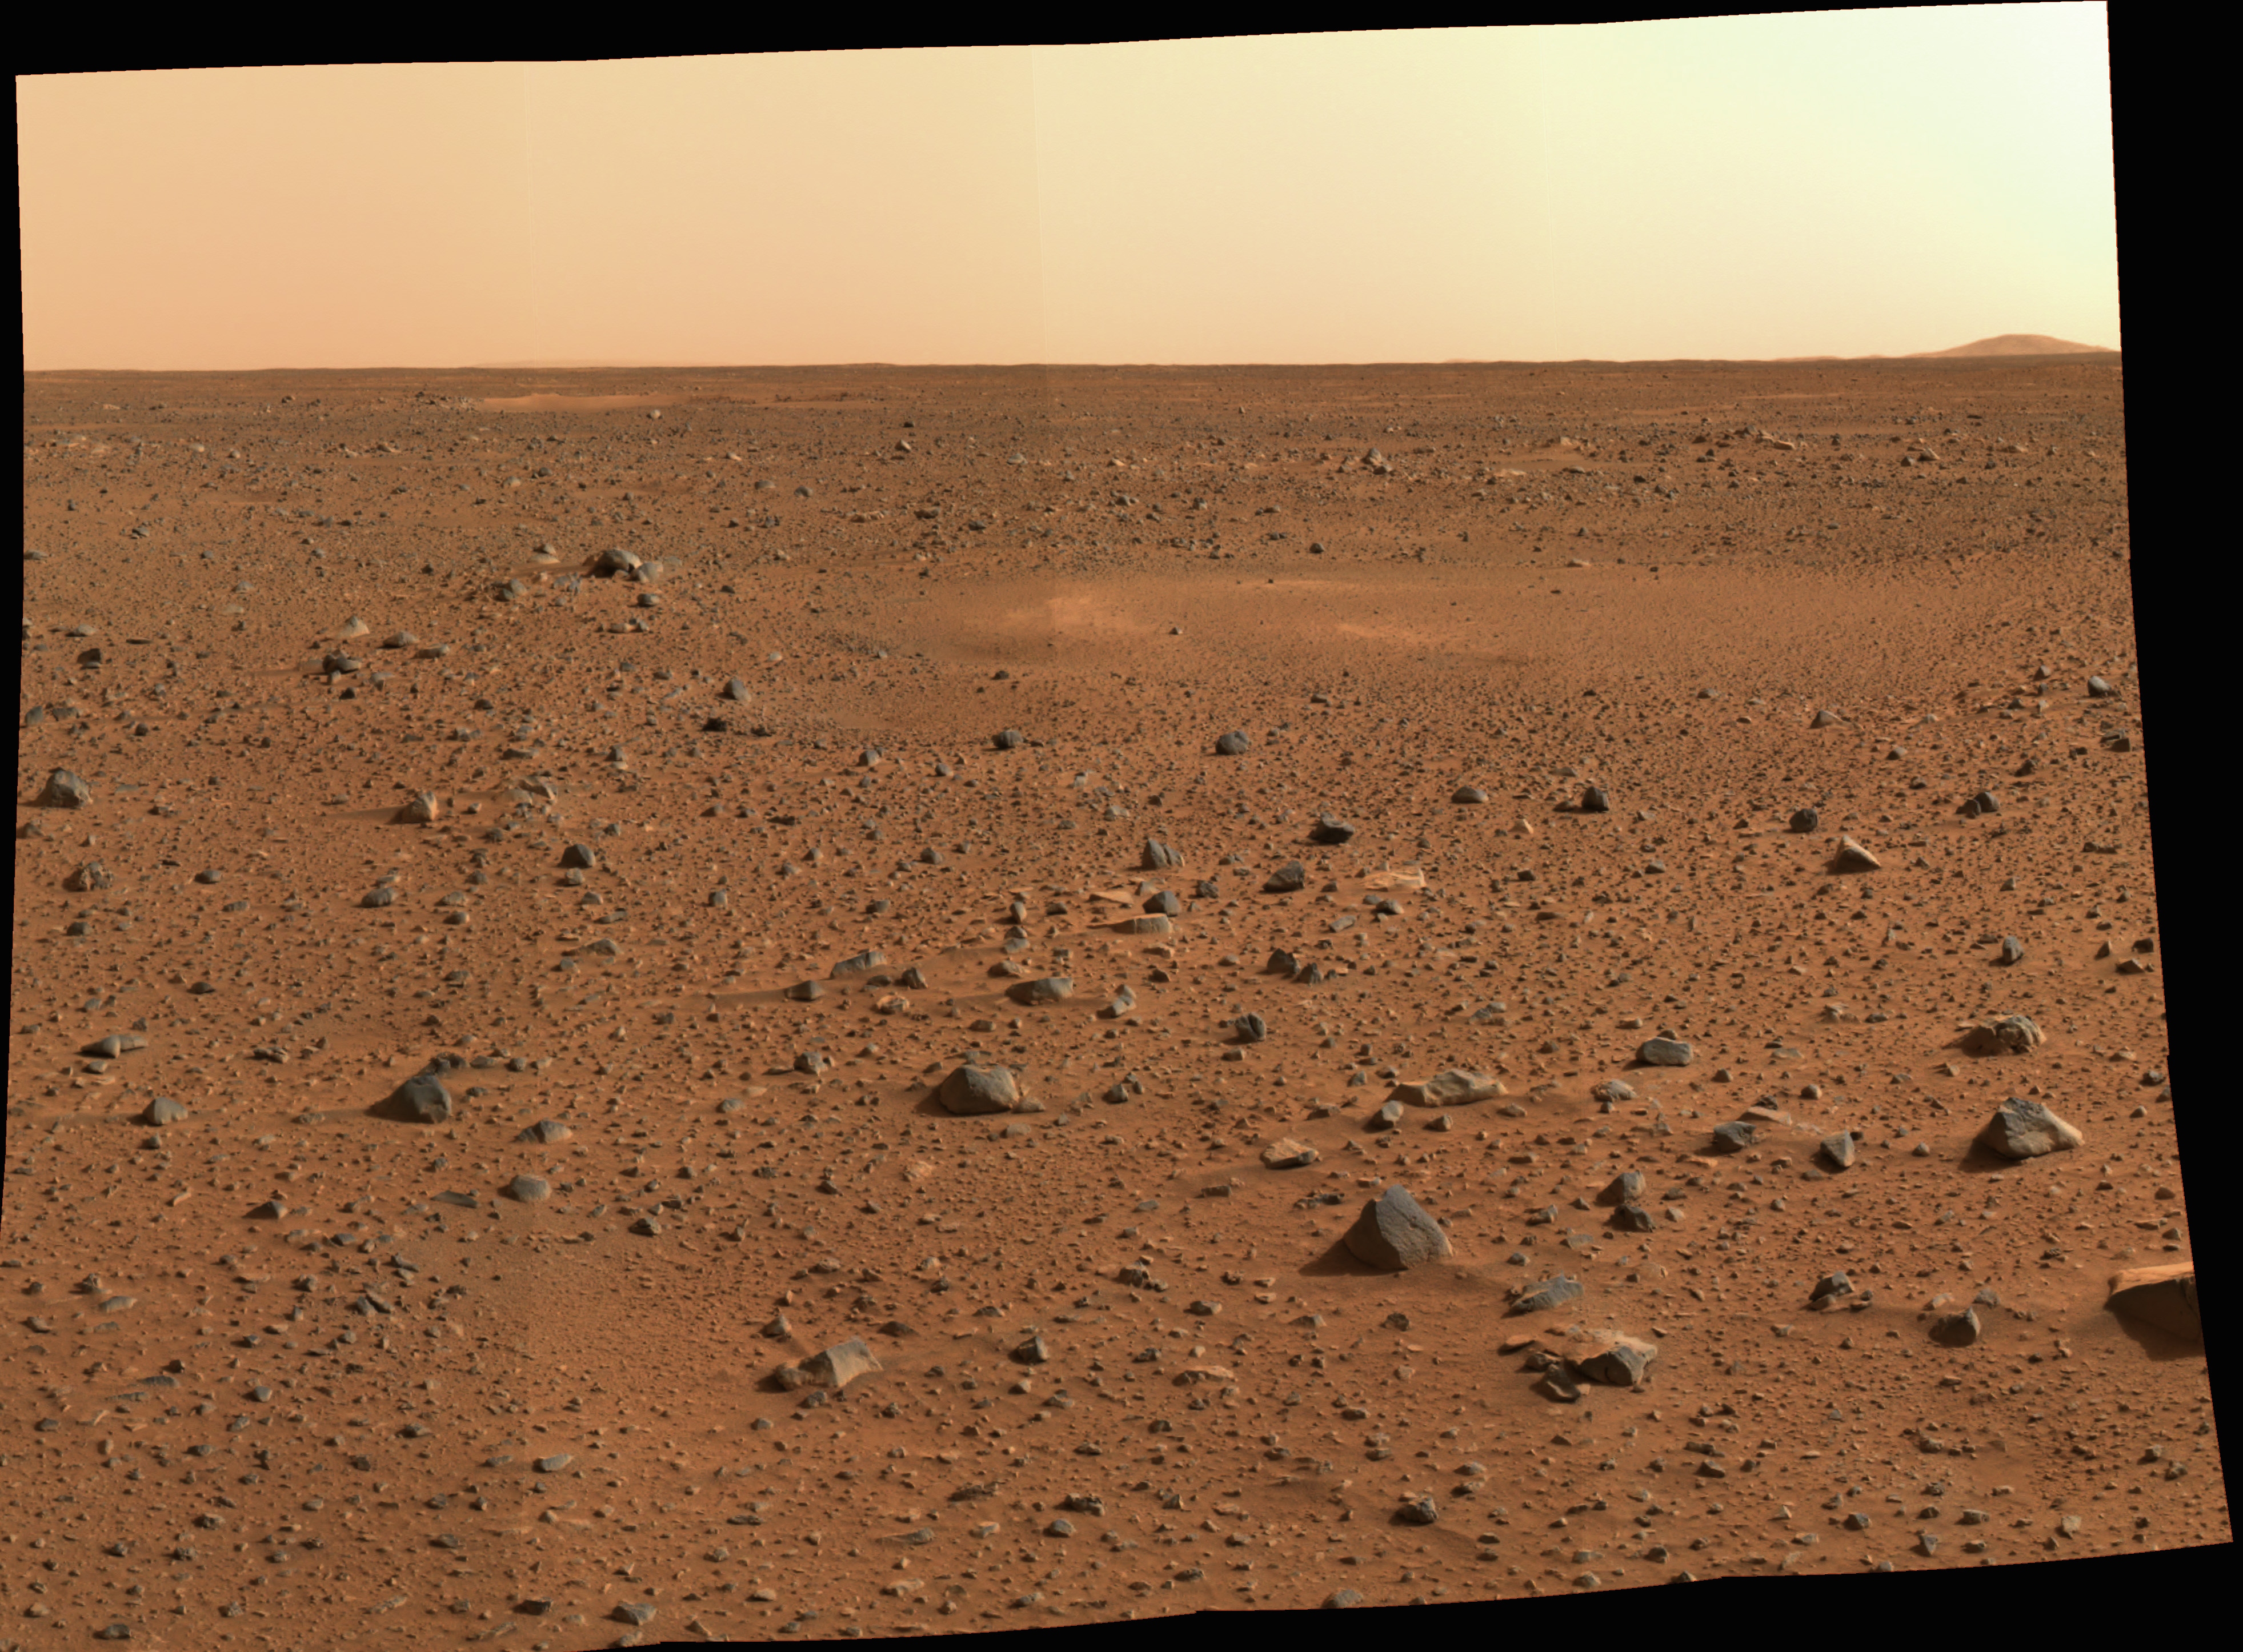 Mars Meteorite Sparks New Questions About Red Planet ...